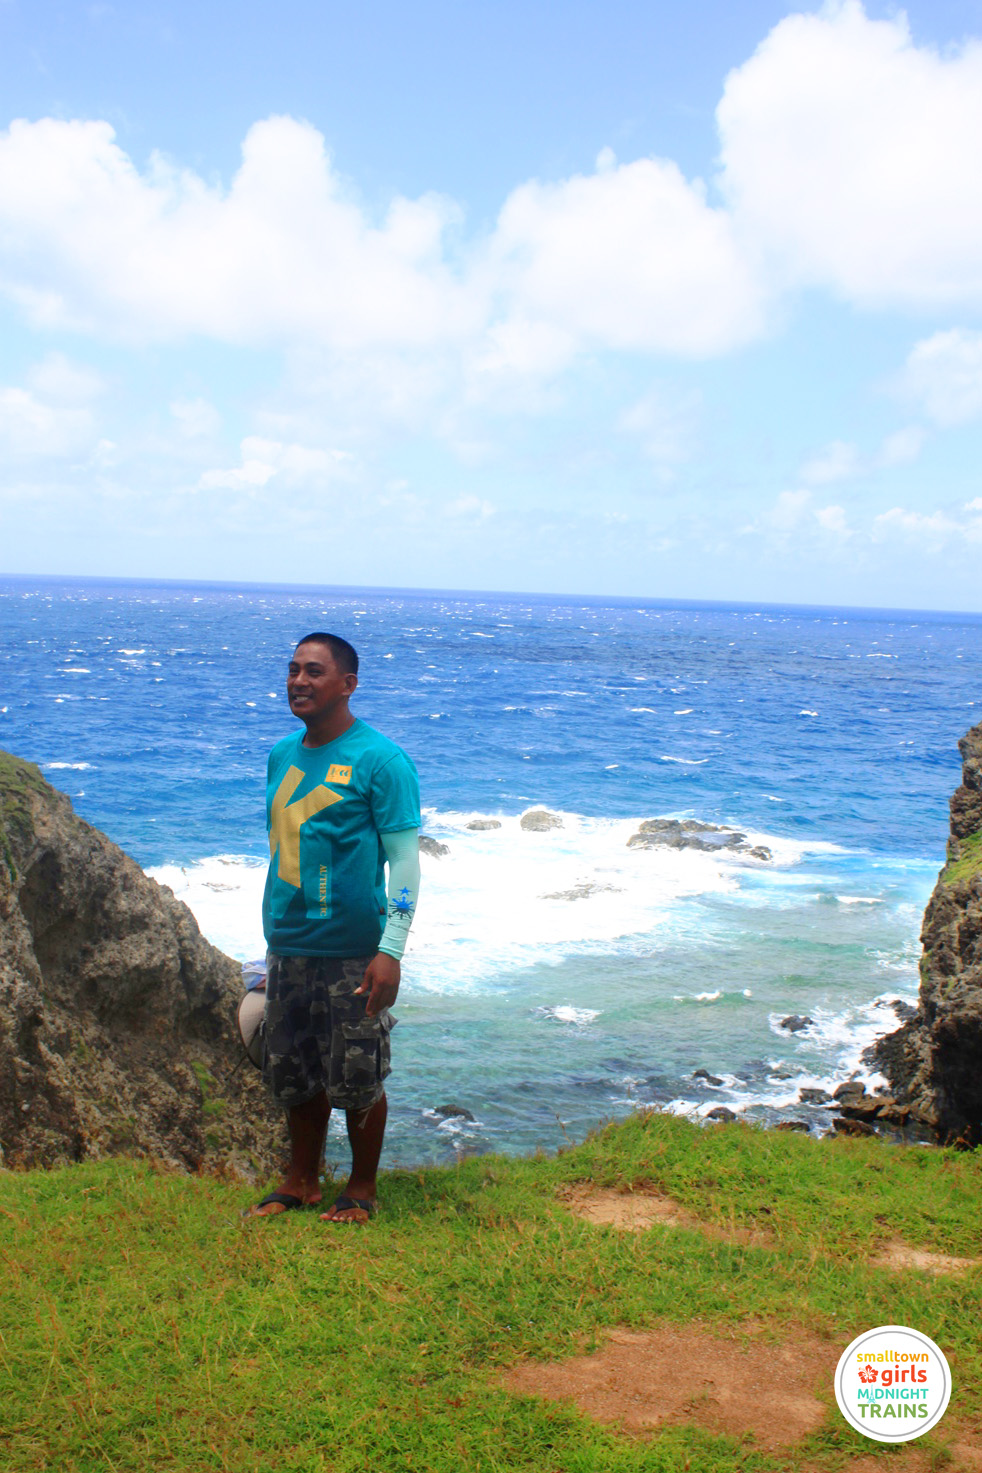 Romy Daroca, our tour guide in Batanes